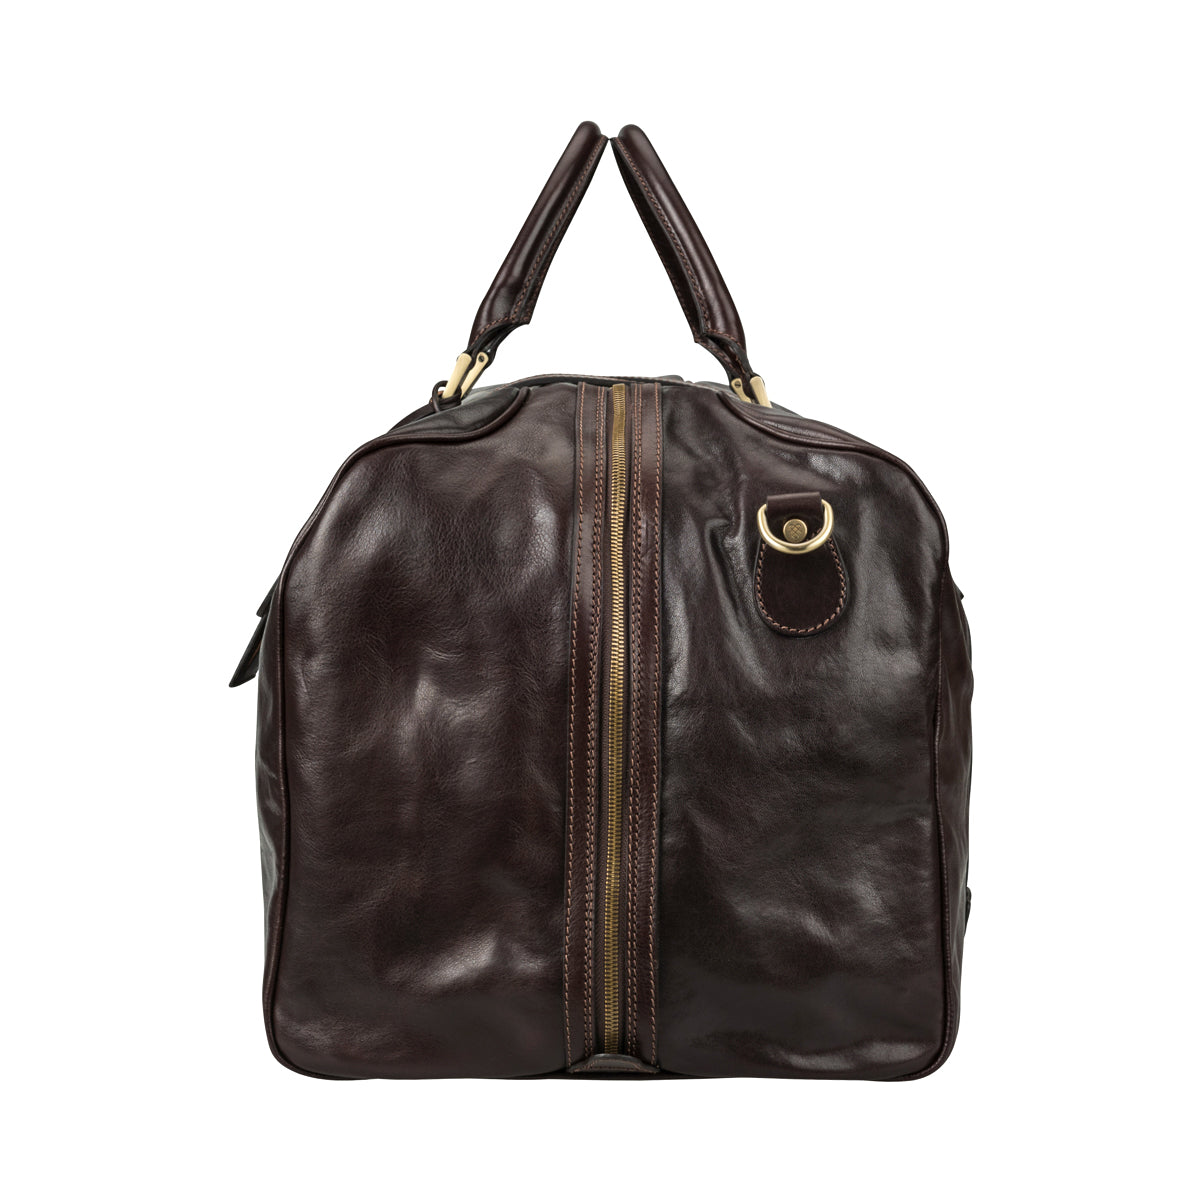 Image 3 of the Extra Large 'Flero' Dark Chocolate Veg-Tanned Leather Holdall